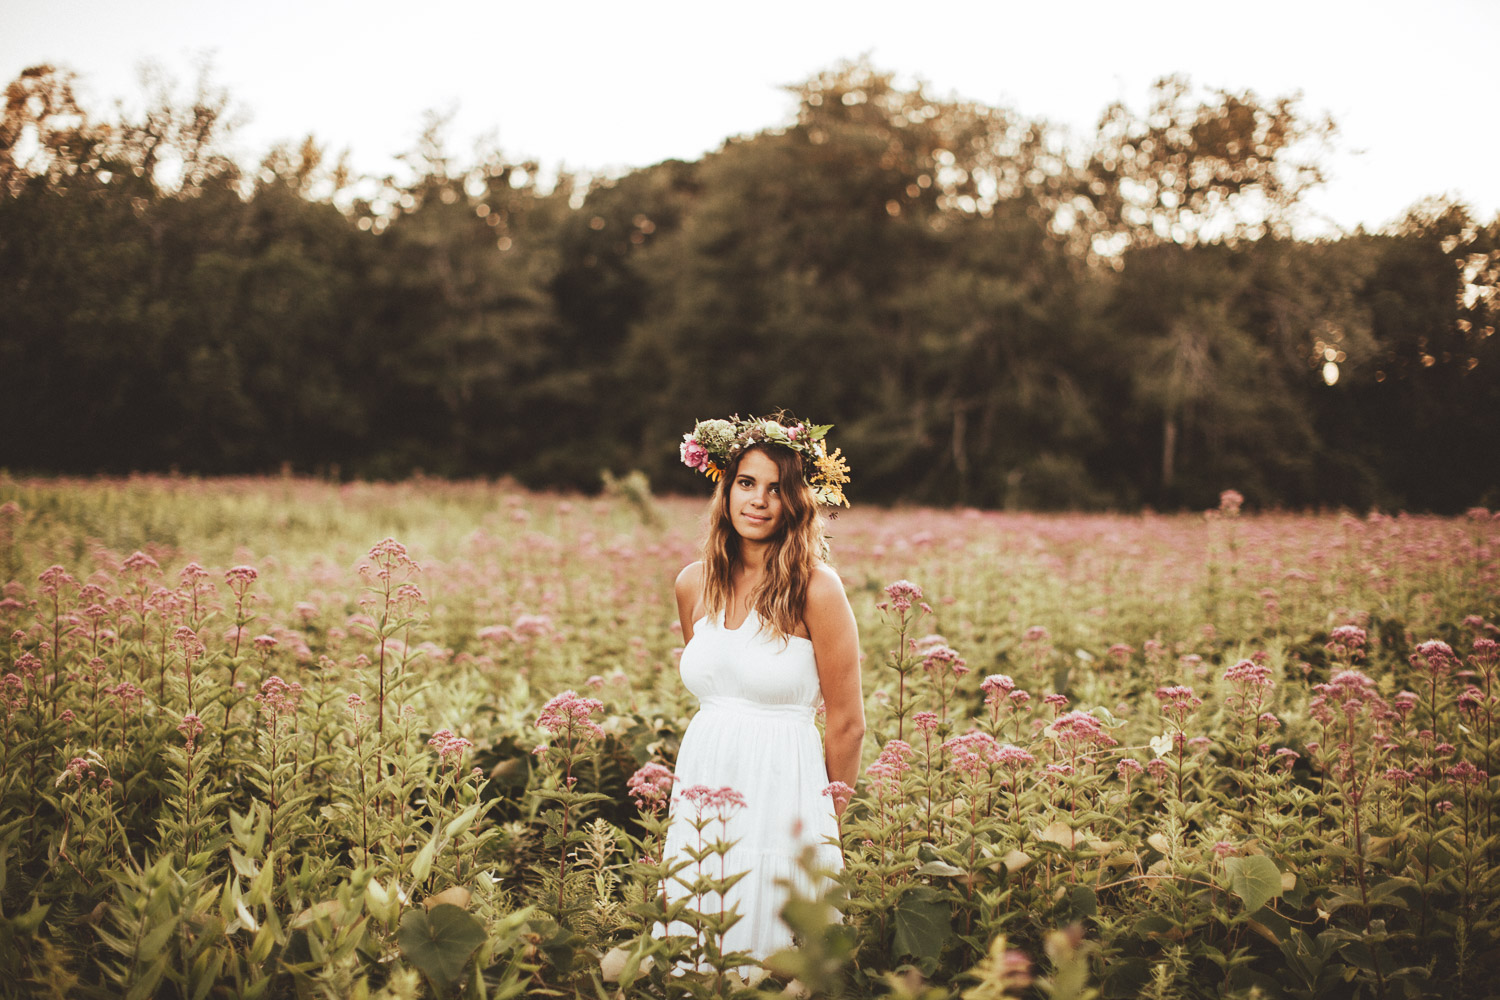 rustic-flower-field-wedding-15.jpg